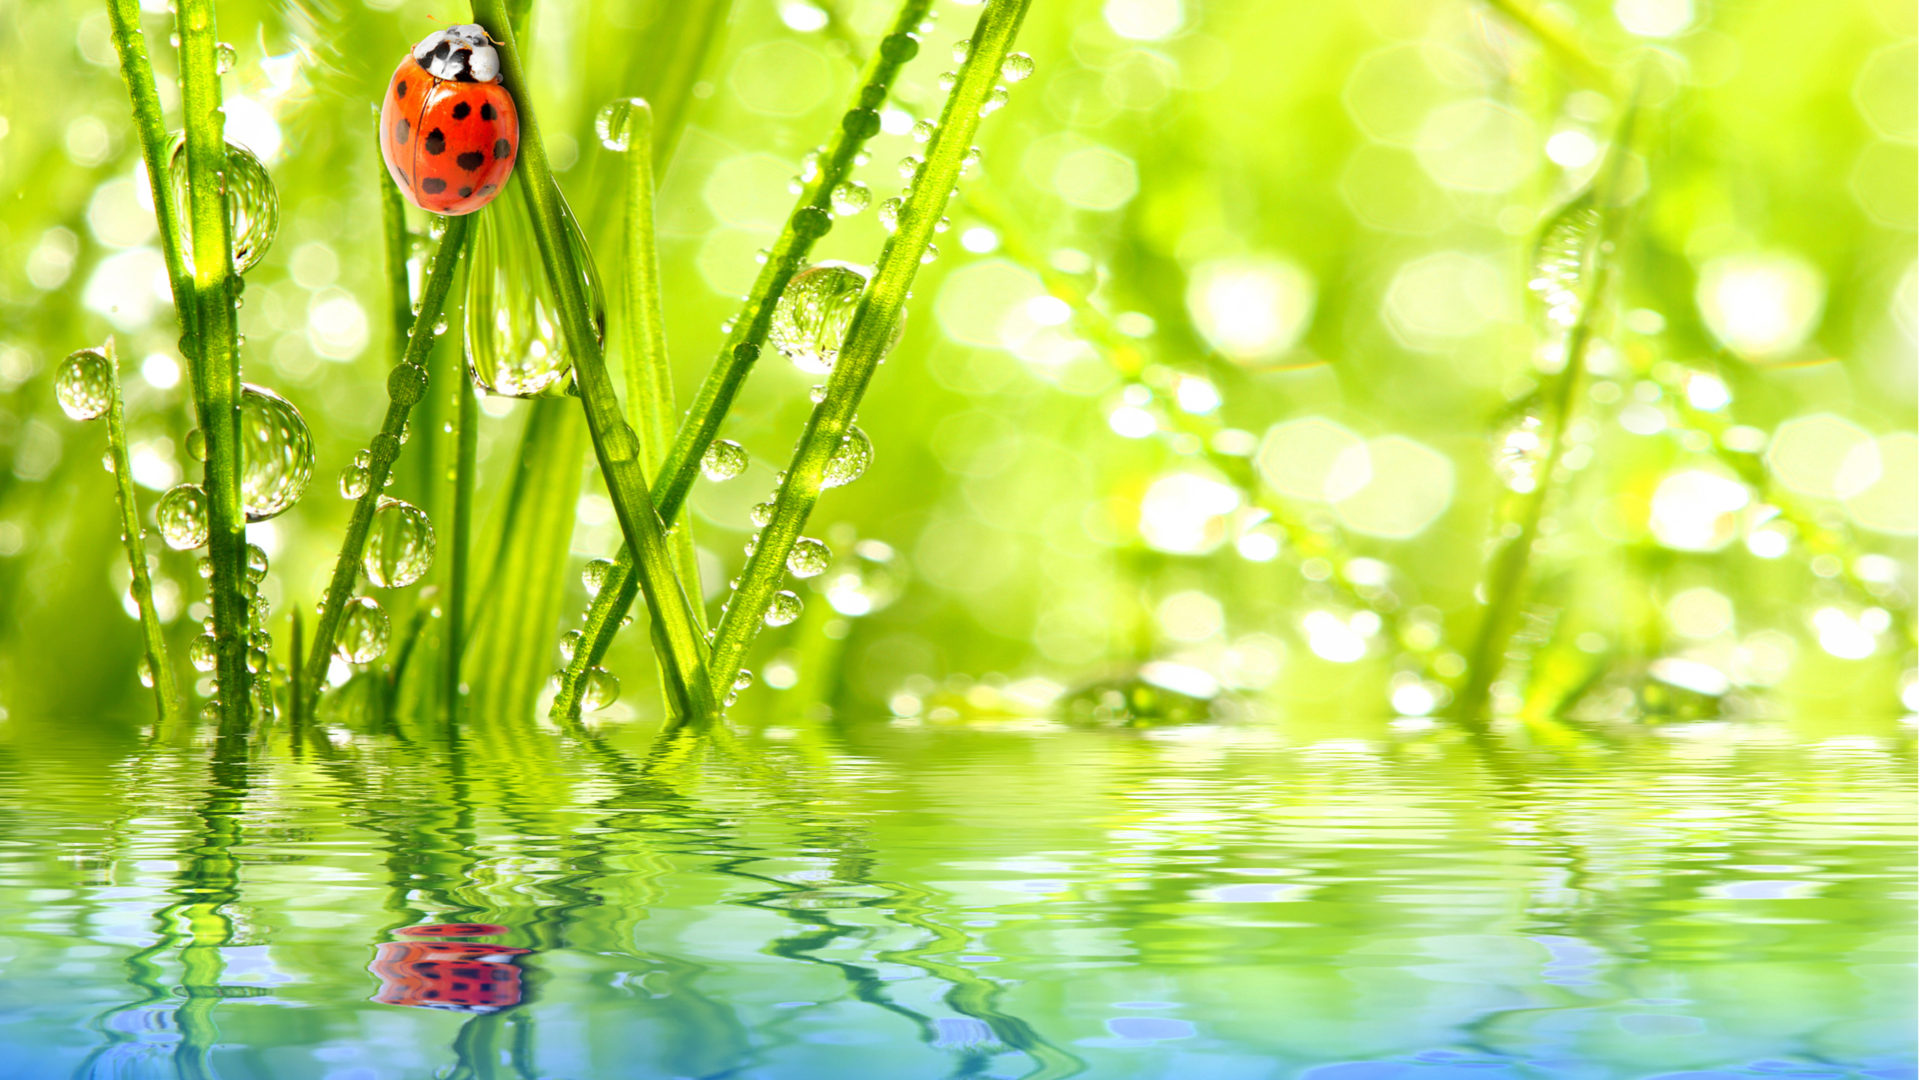 Happy New Year 3d Wallpaper Download Insect Ladybug Water Drops Dew Green Grass Reflection Sky